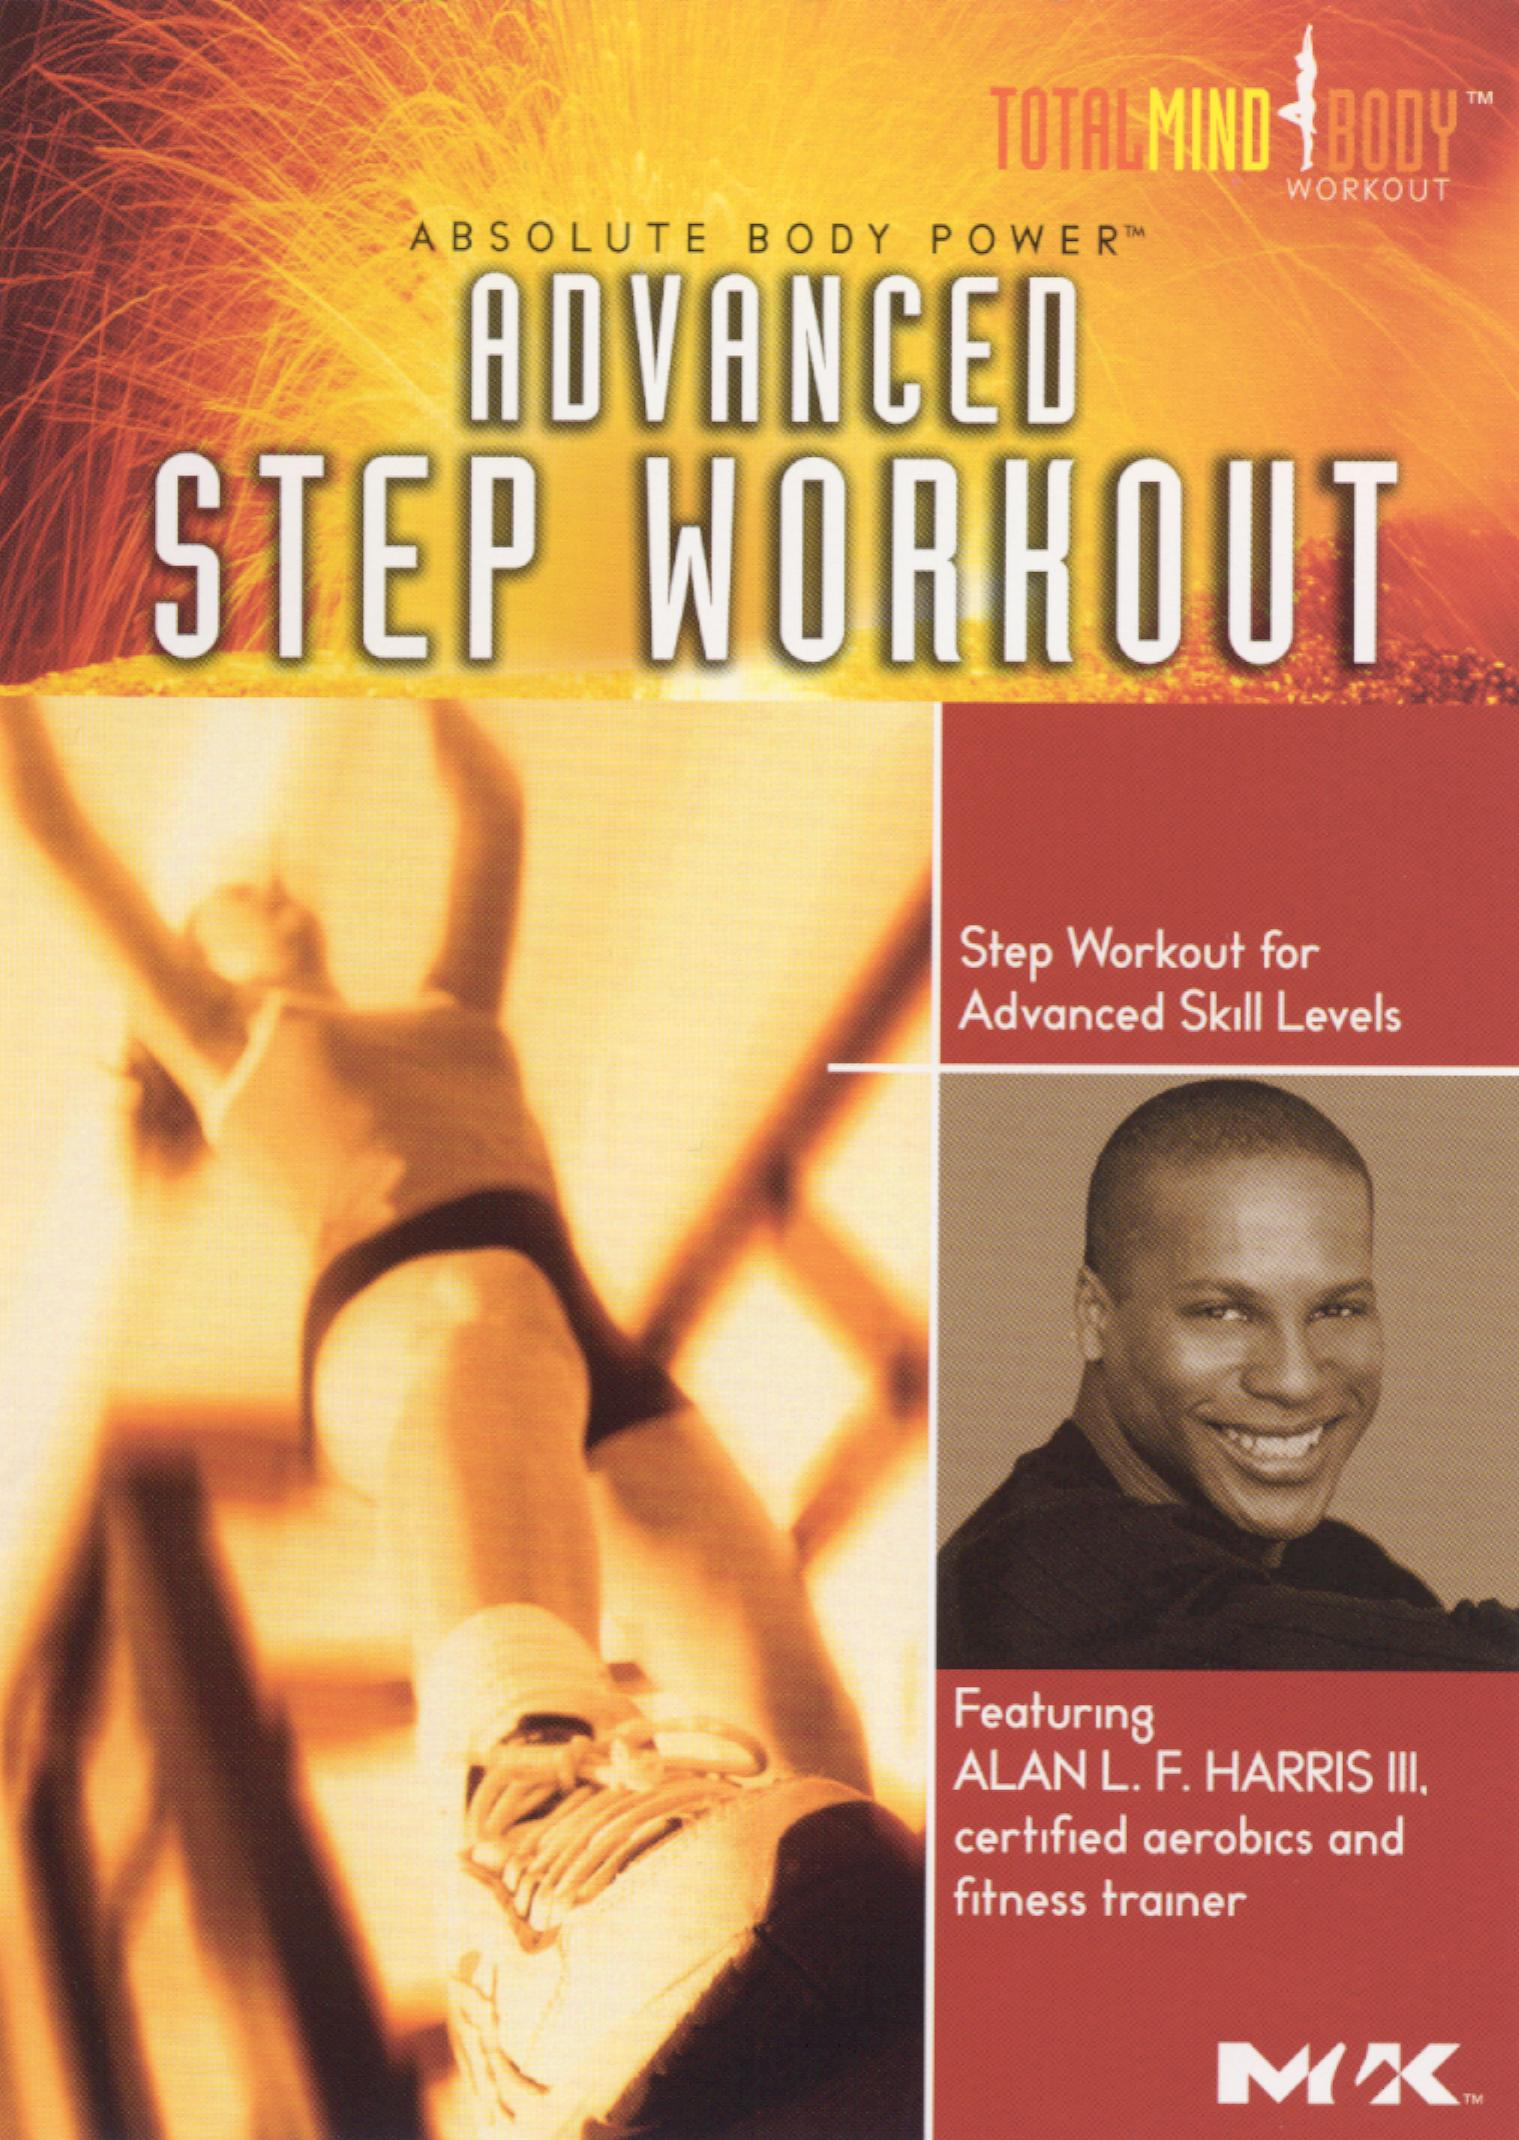 Absolute Body Power, Vol. 4: Advanced Step Workout